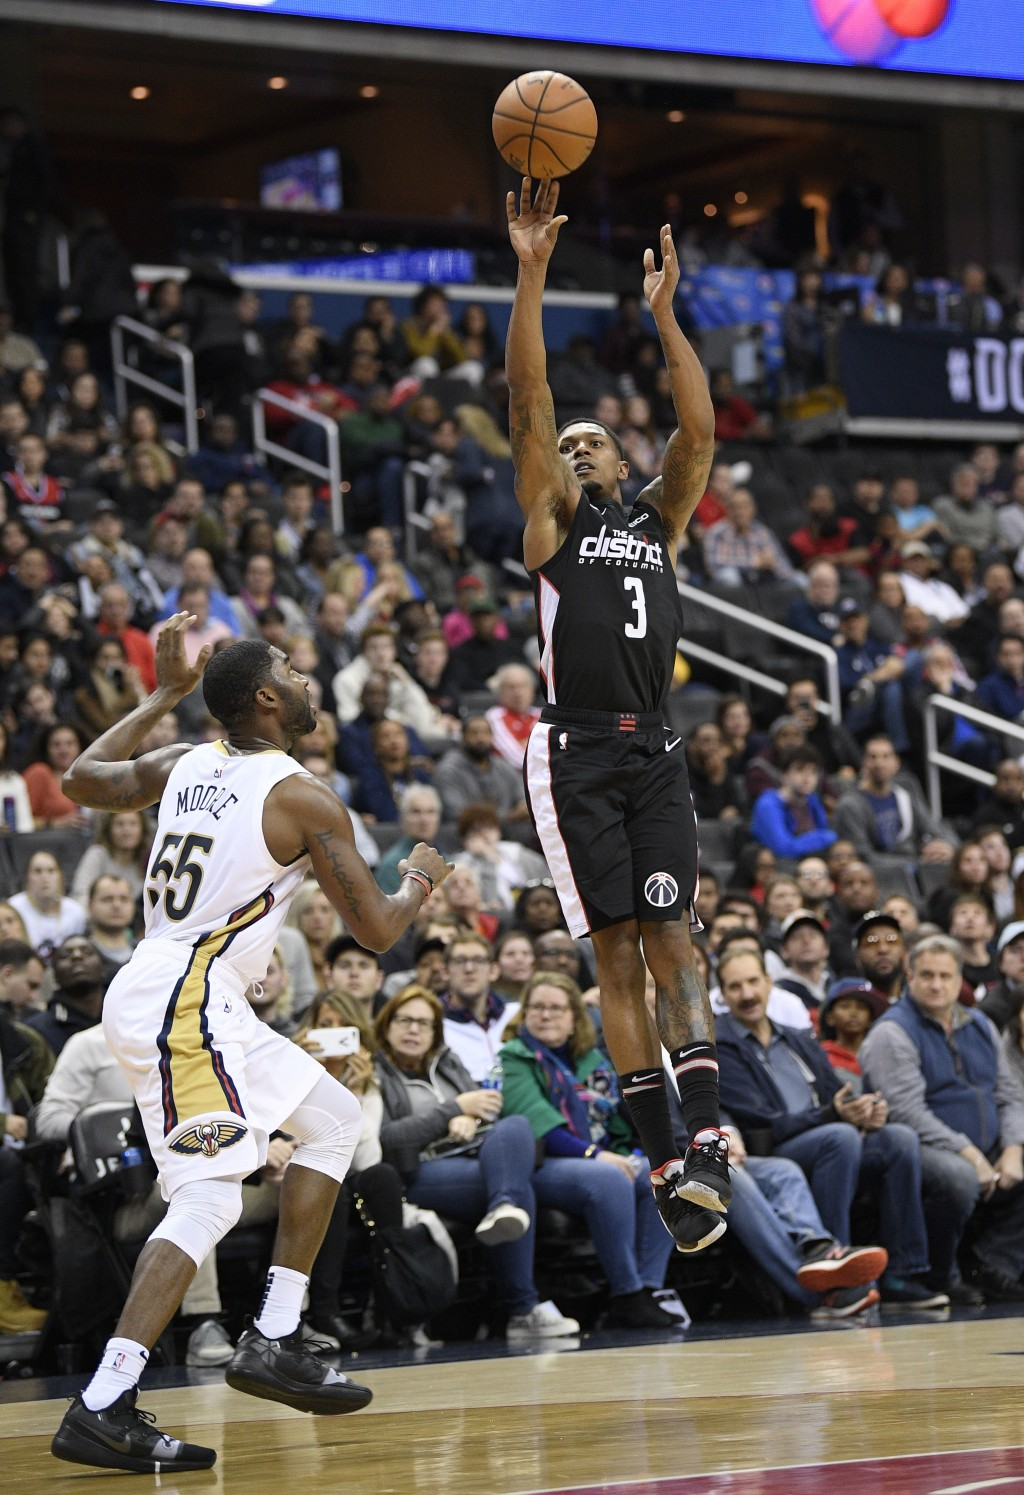 Washington Wizards guard Bradley Beal (3) shoots over New Orleans Pelicans guard E'Twaun Moore (55) during the second half of an NBA basketball game S